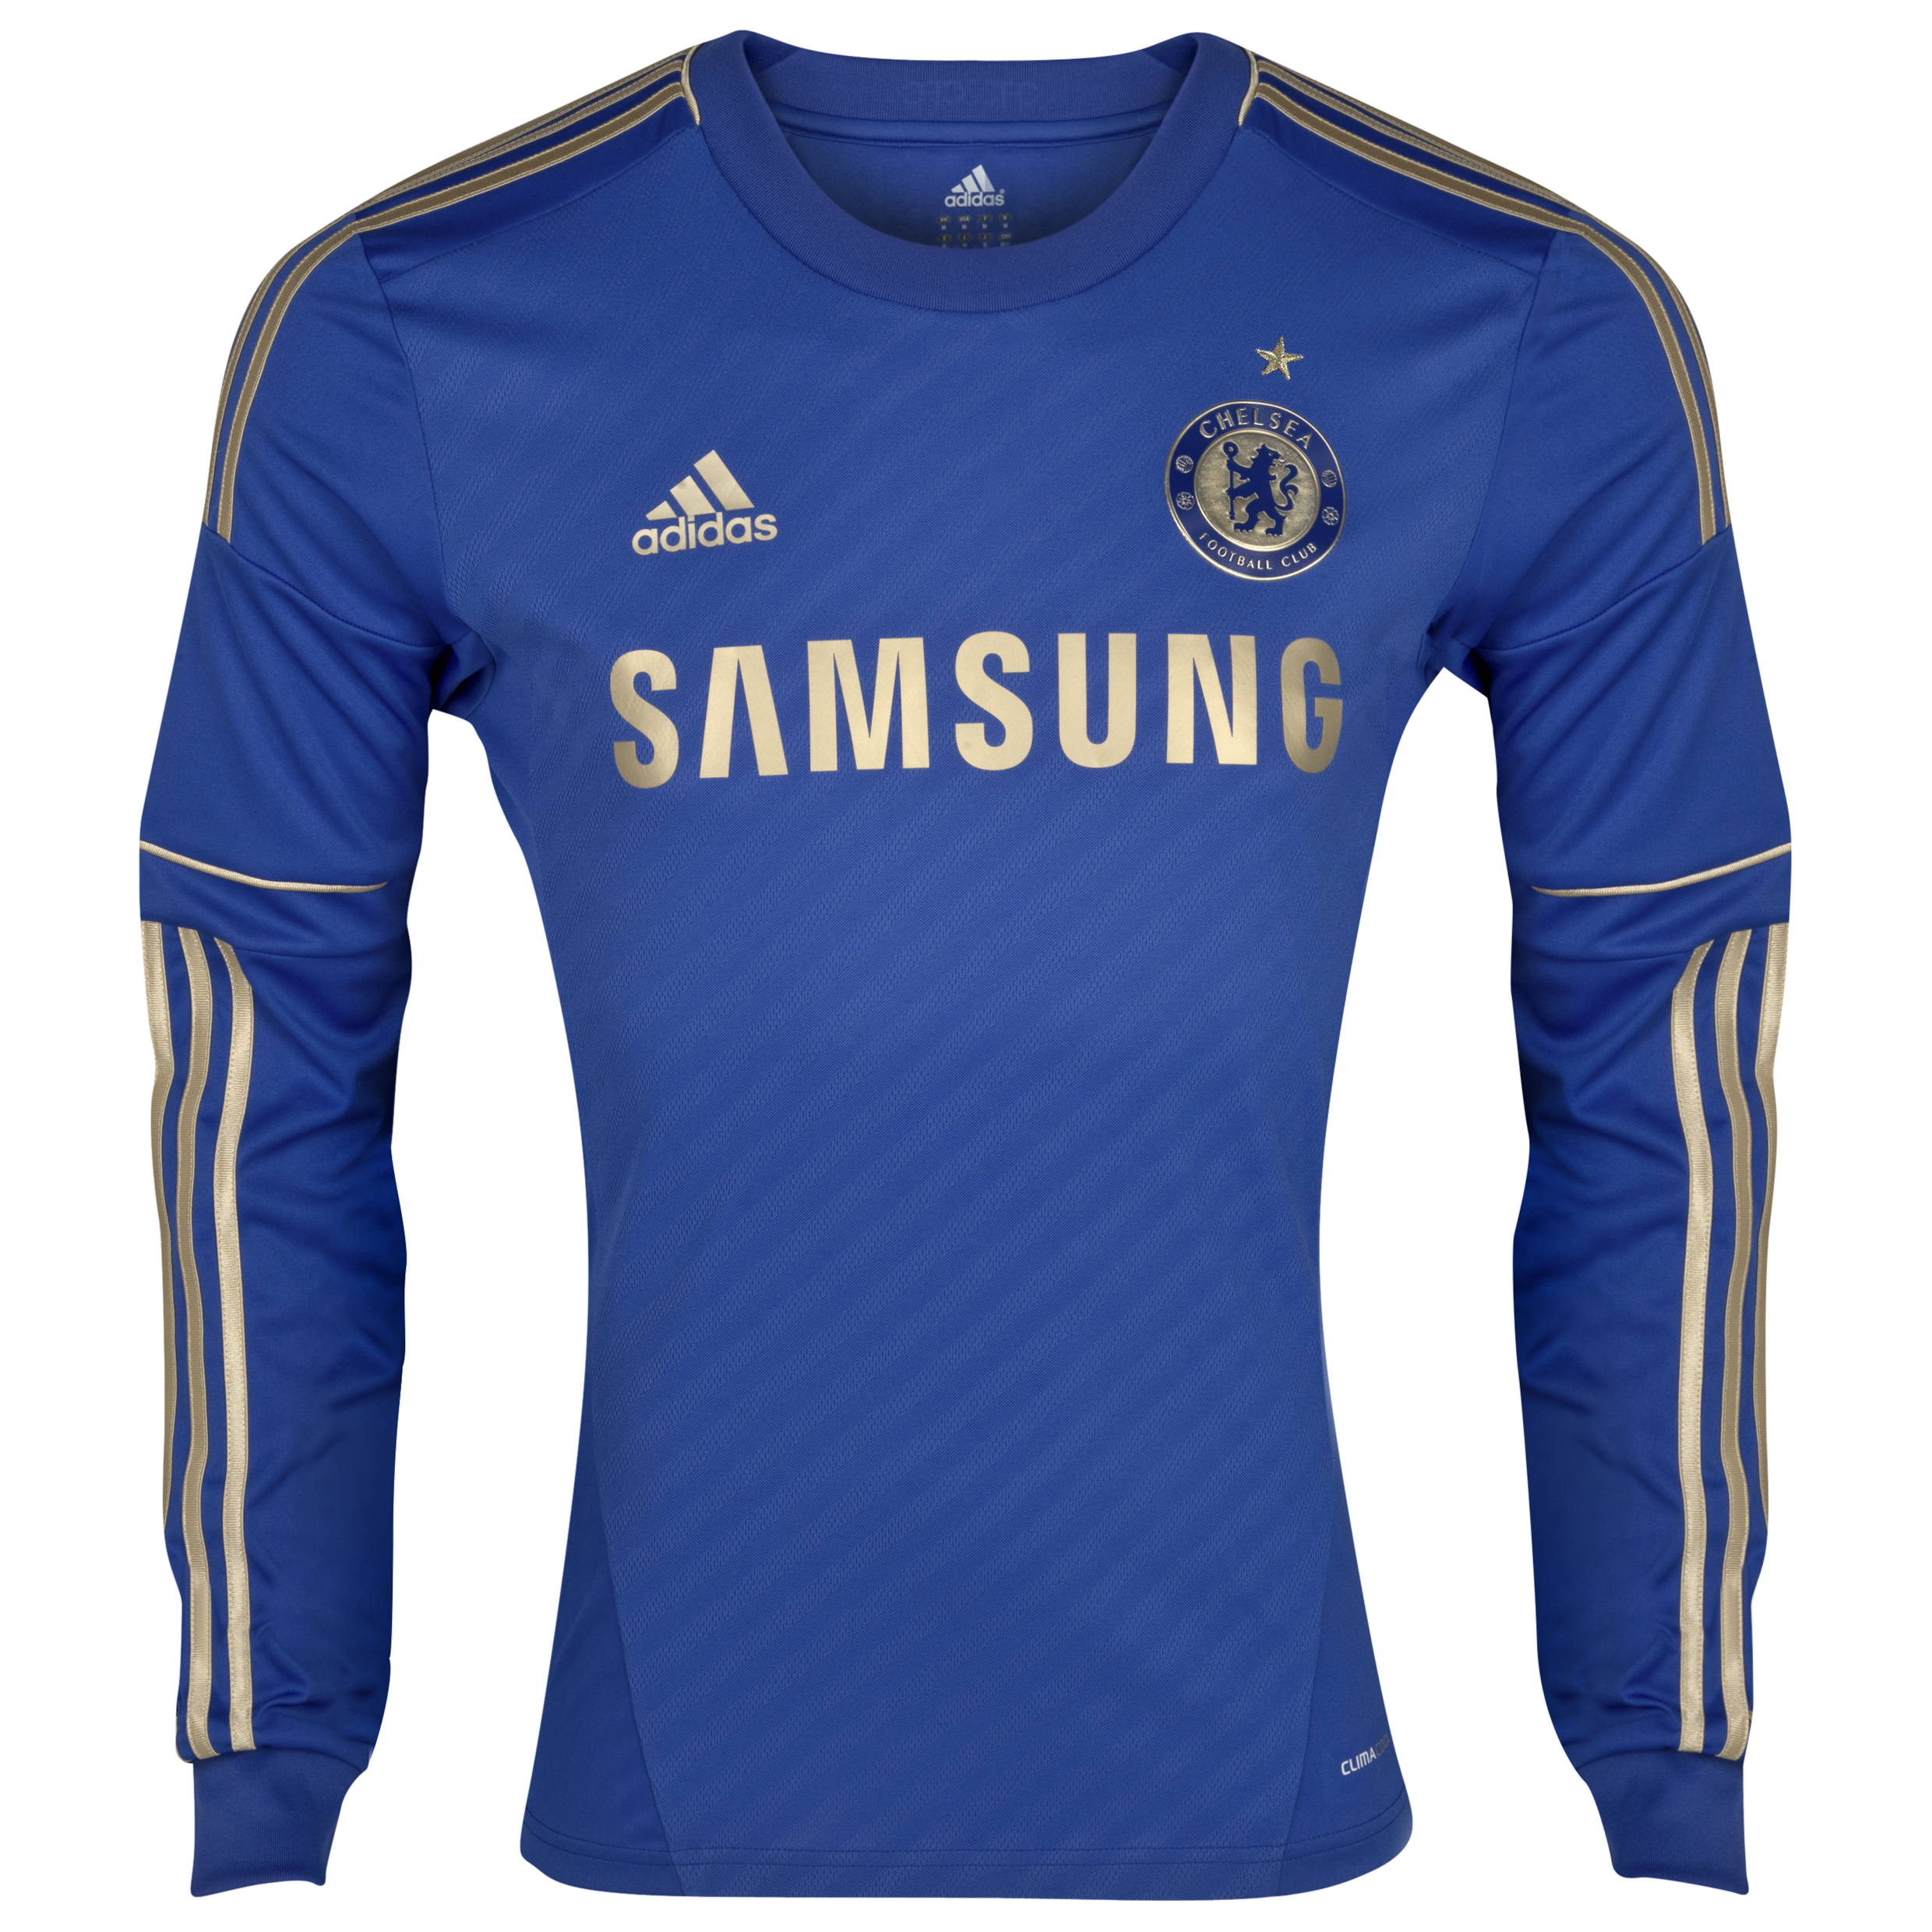 Chelsea Home Shirt 2012/13 - Long Sleeved Including Gold Star